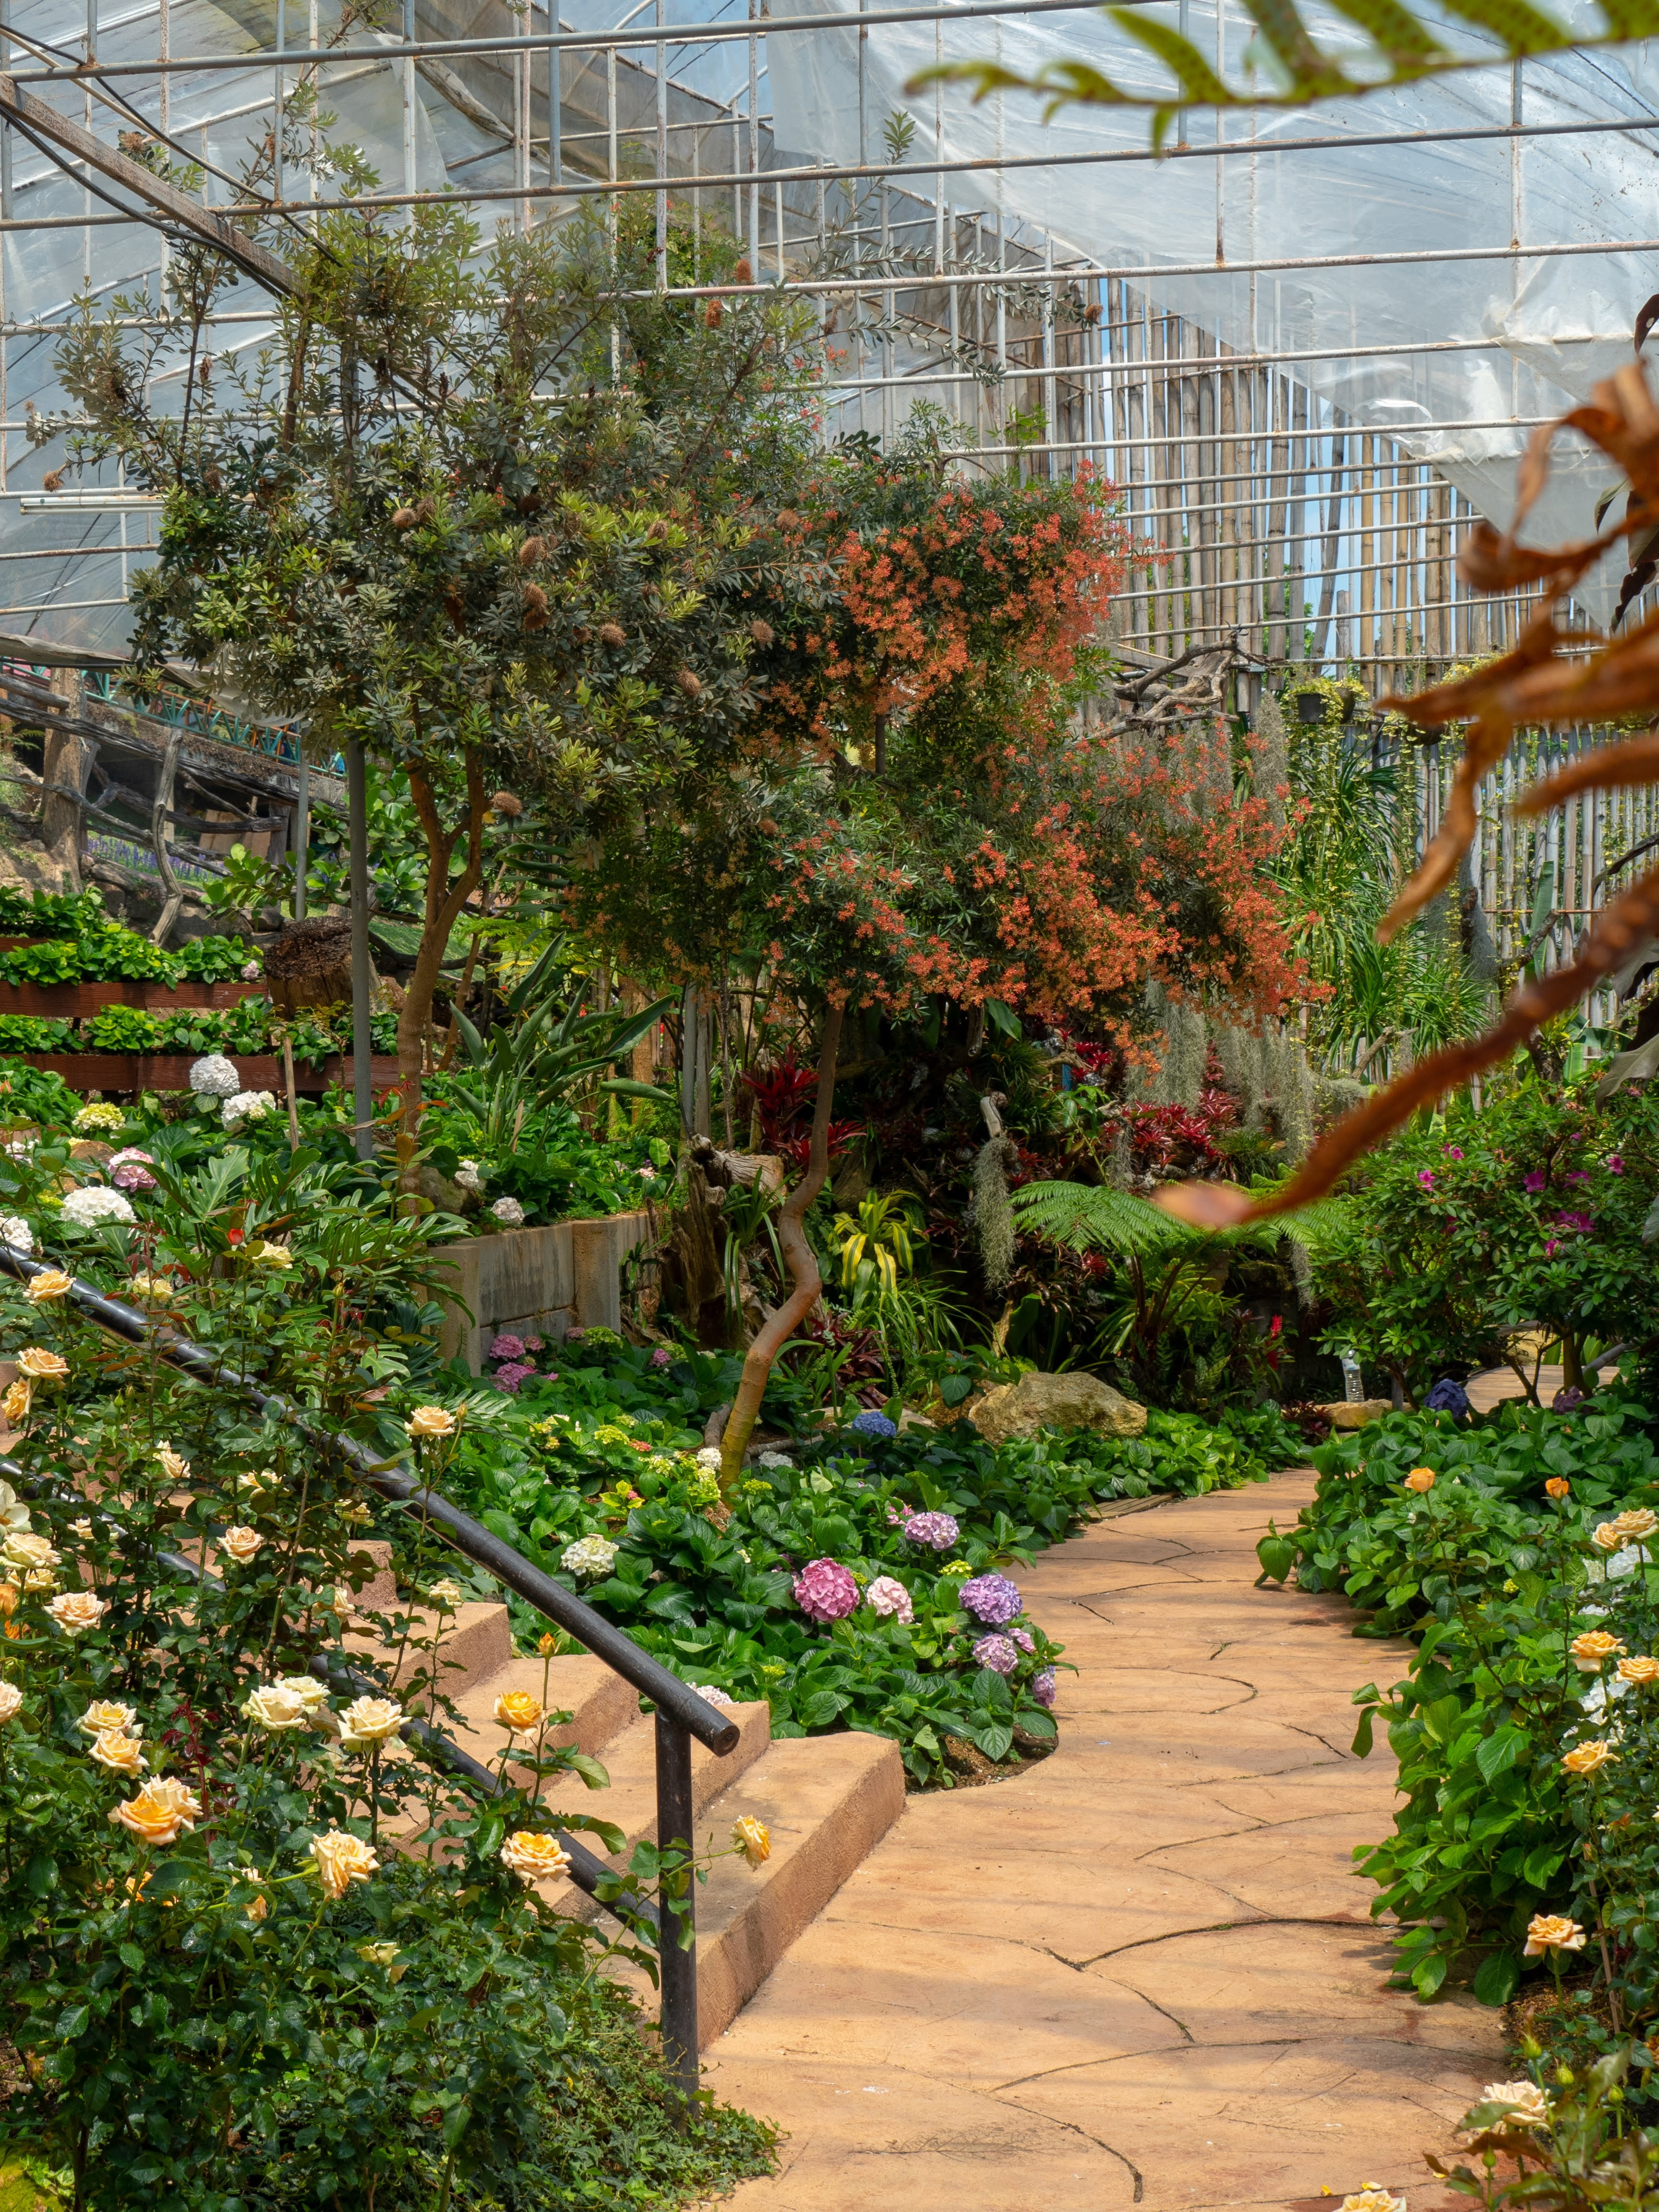 Most Common Garden Planning Mistakes And The Smart Ways To Counter Them